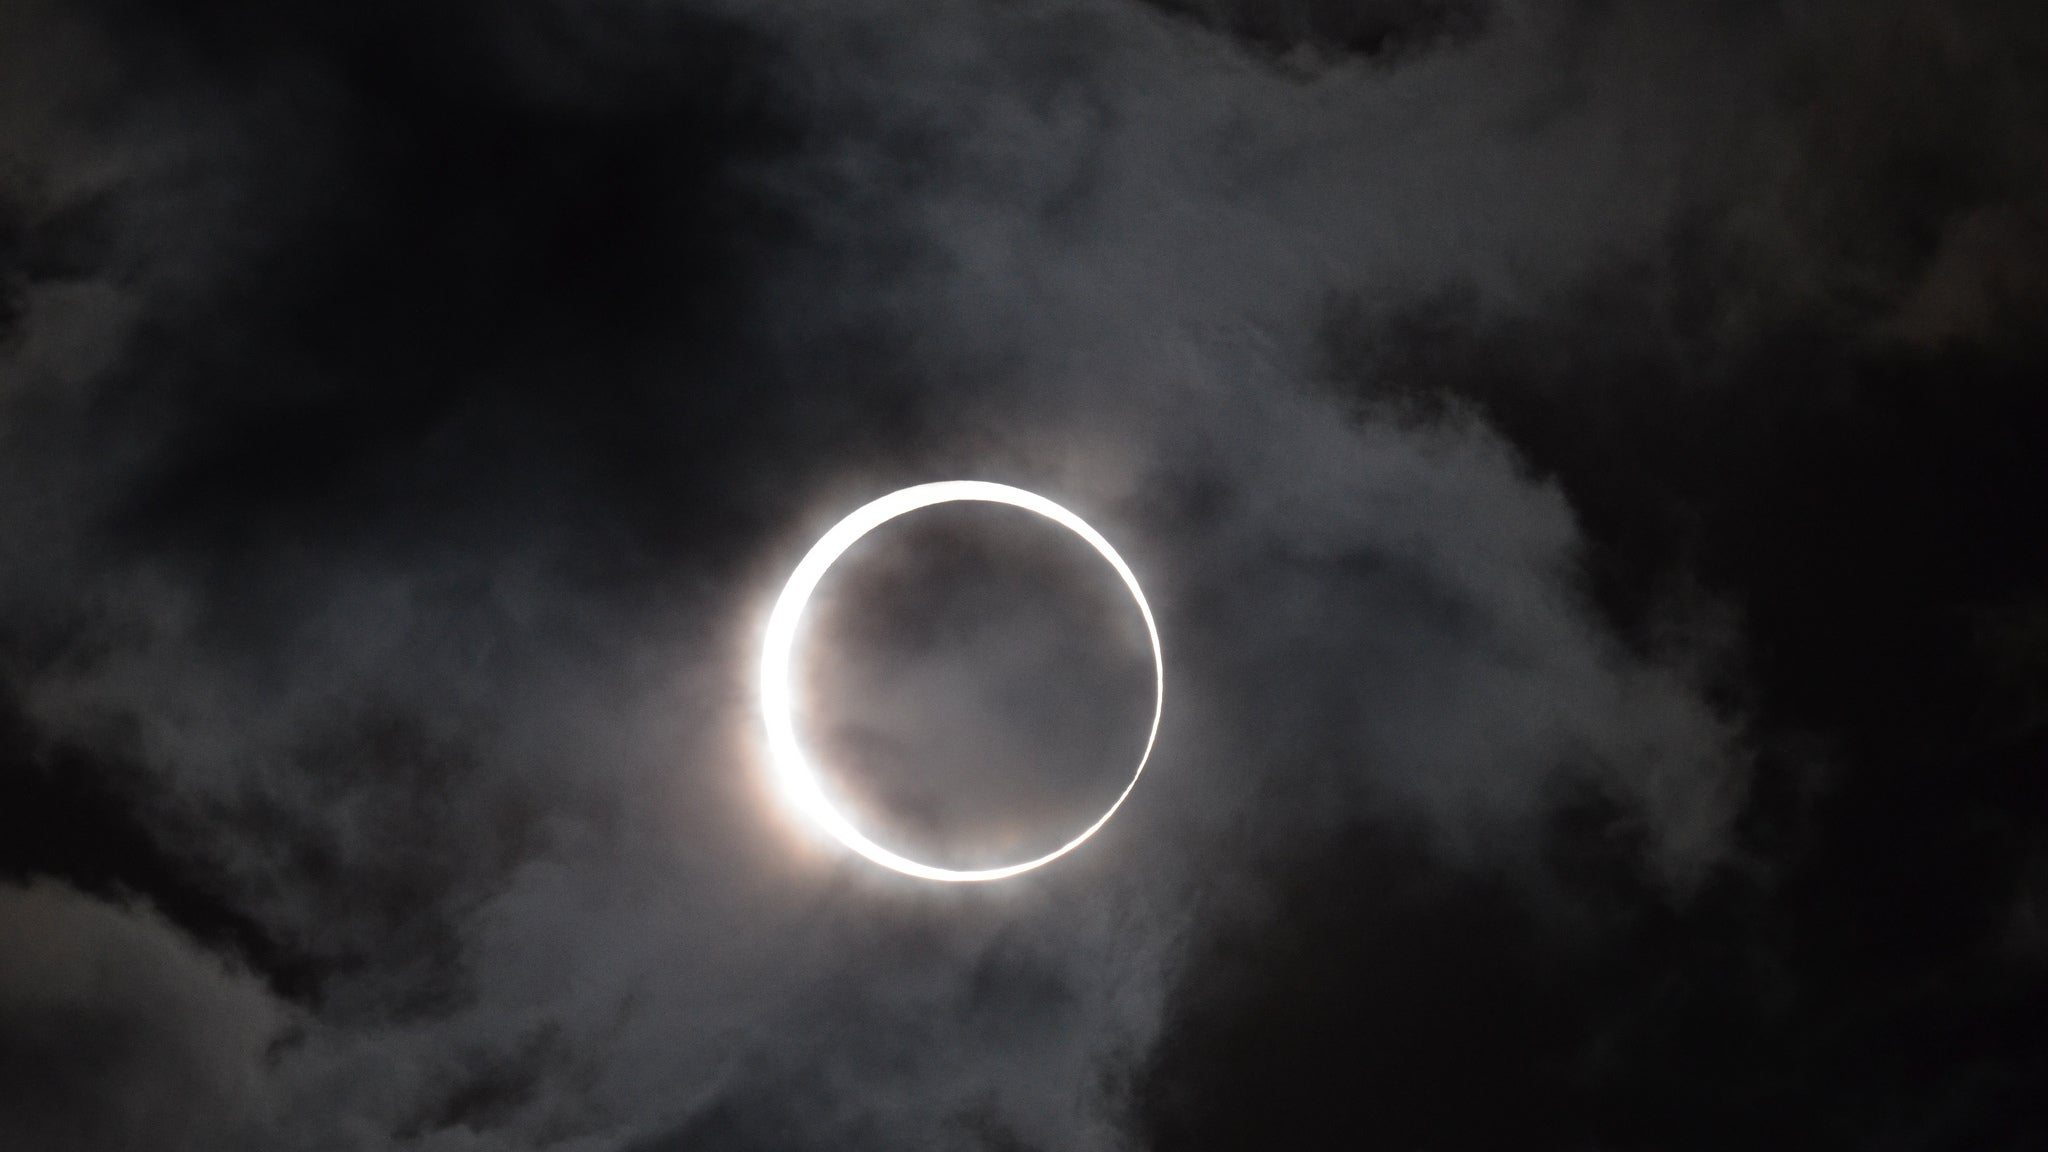 So, Was The Eclipse All It Was Cracked Up To Be? | Lifehacker Australia